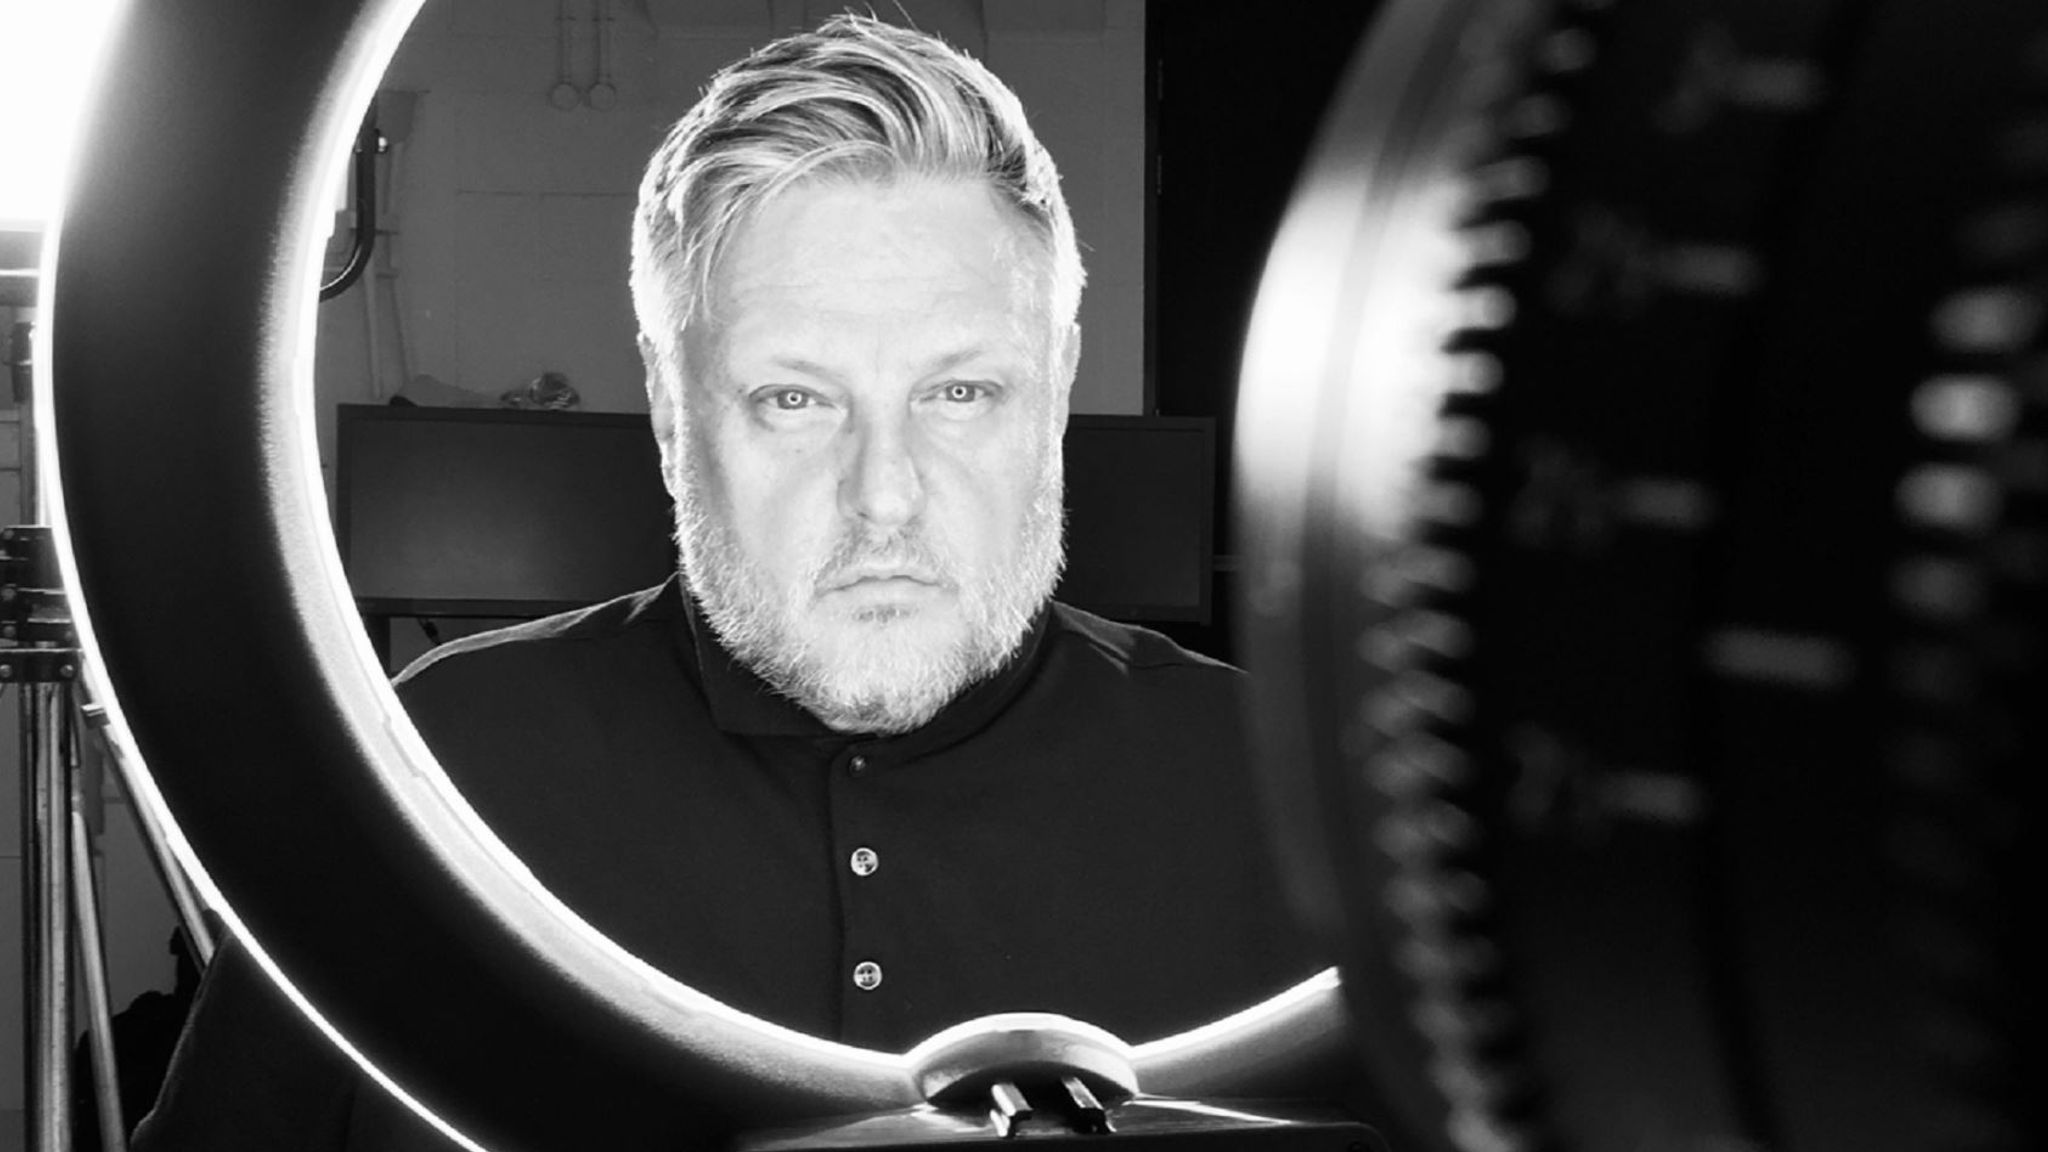 Rankin's 2020 photo search will air on Sky Arts